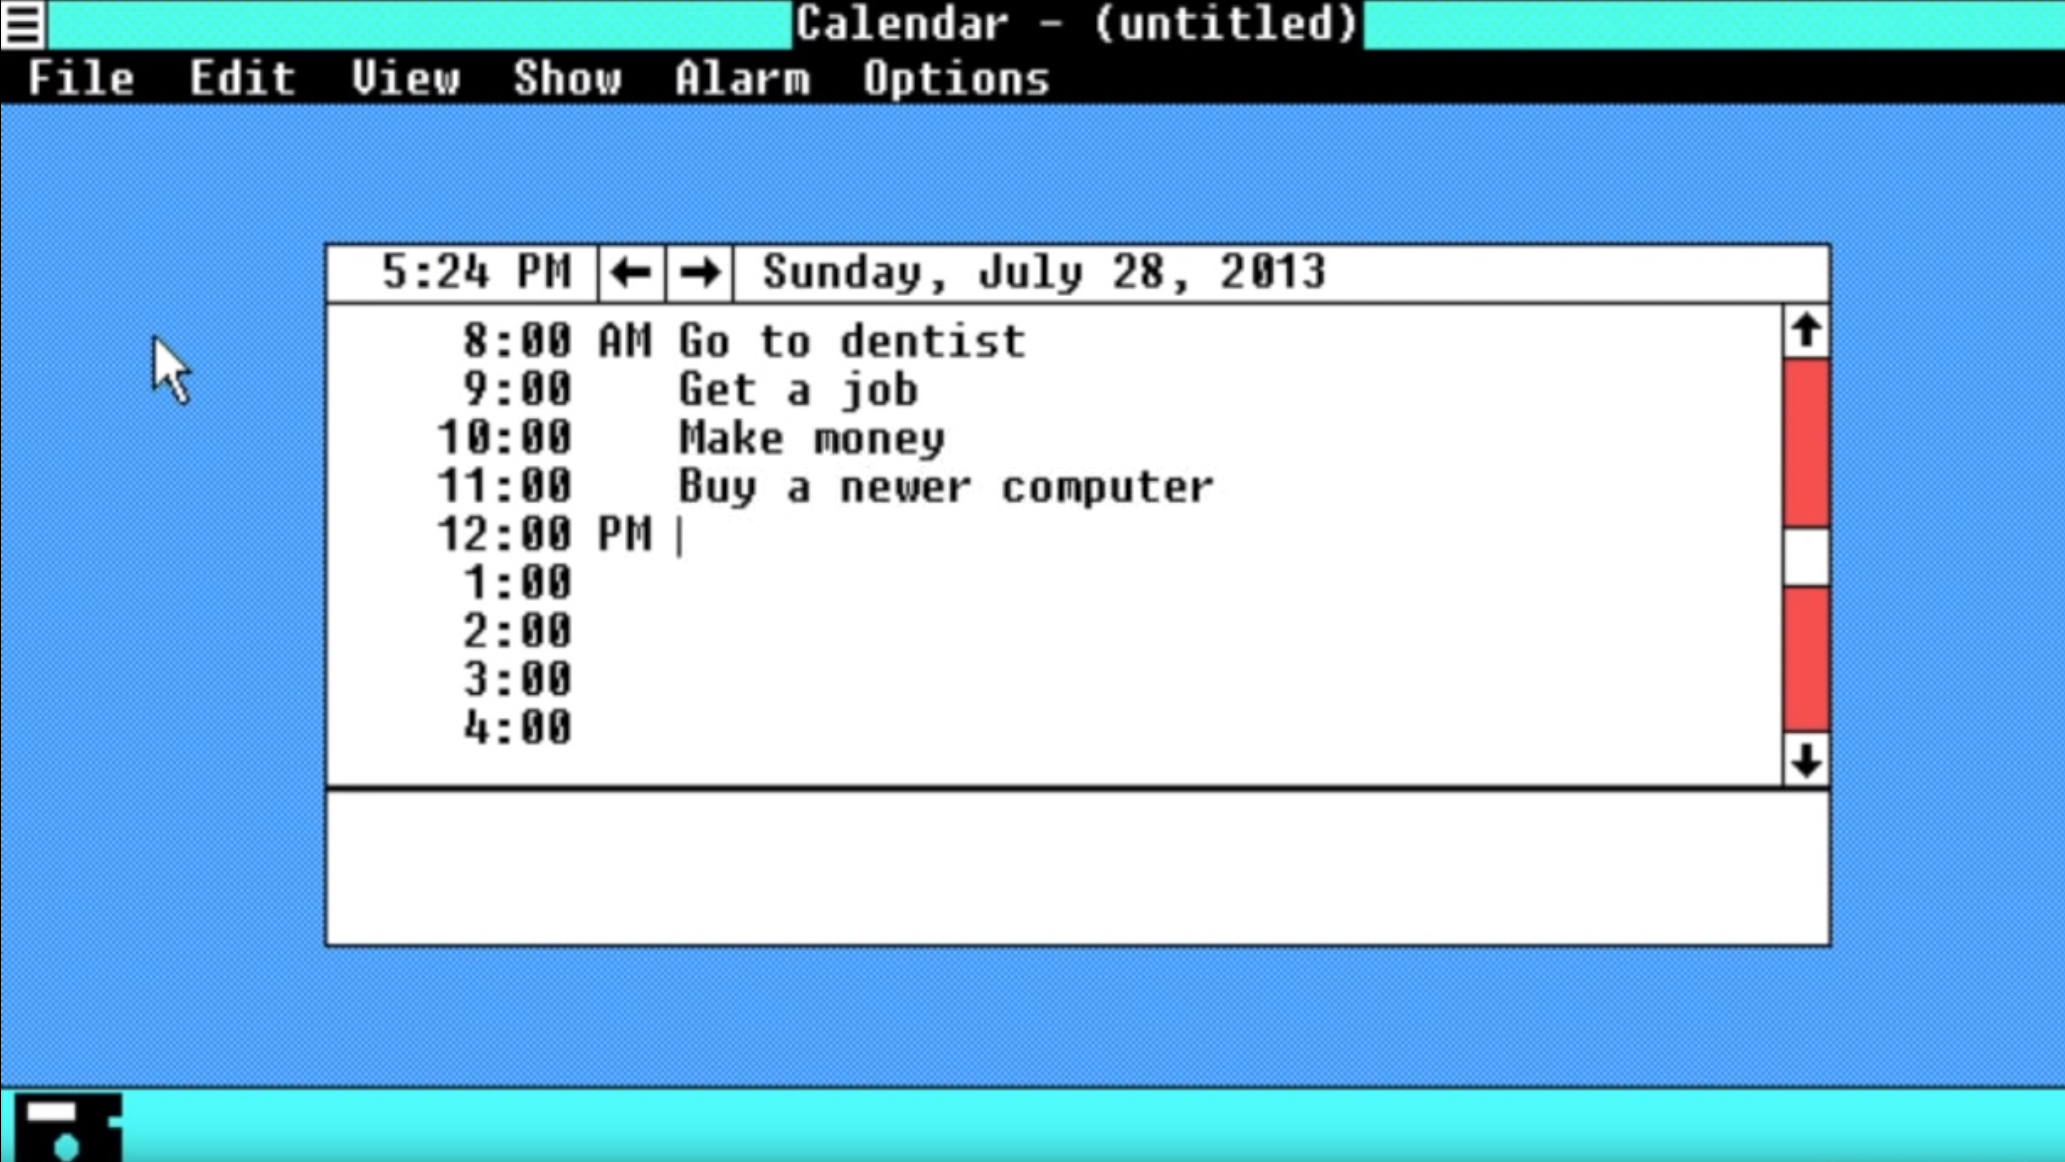 How To Get A 'Clean' Copy Of Windows 1.0 From 1985